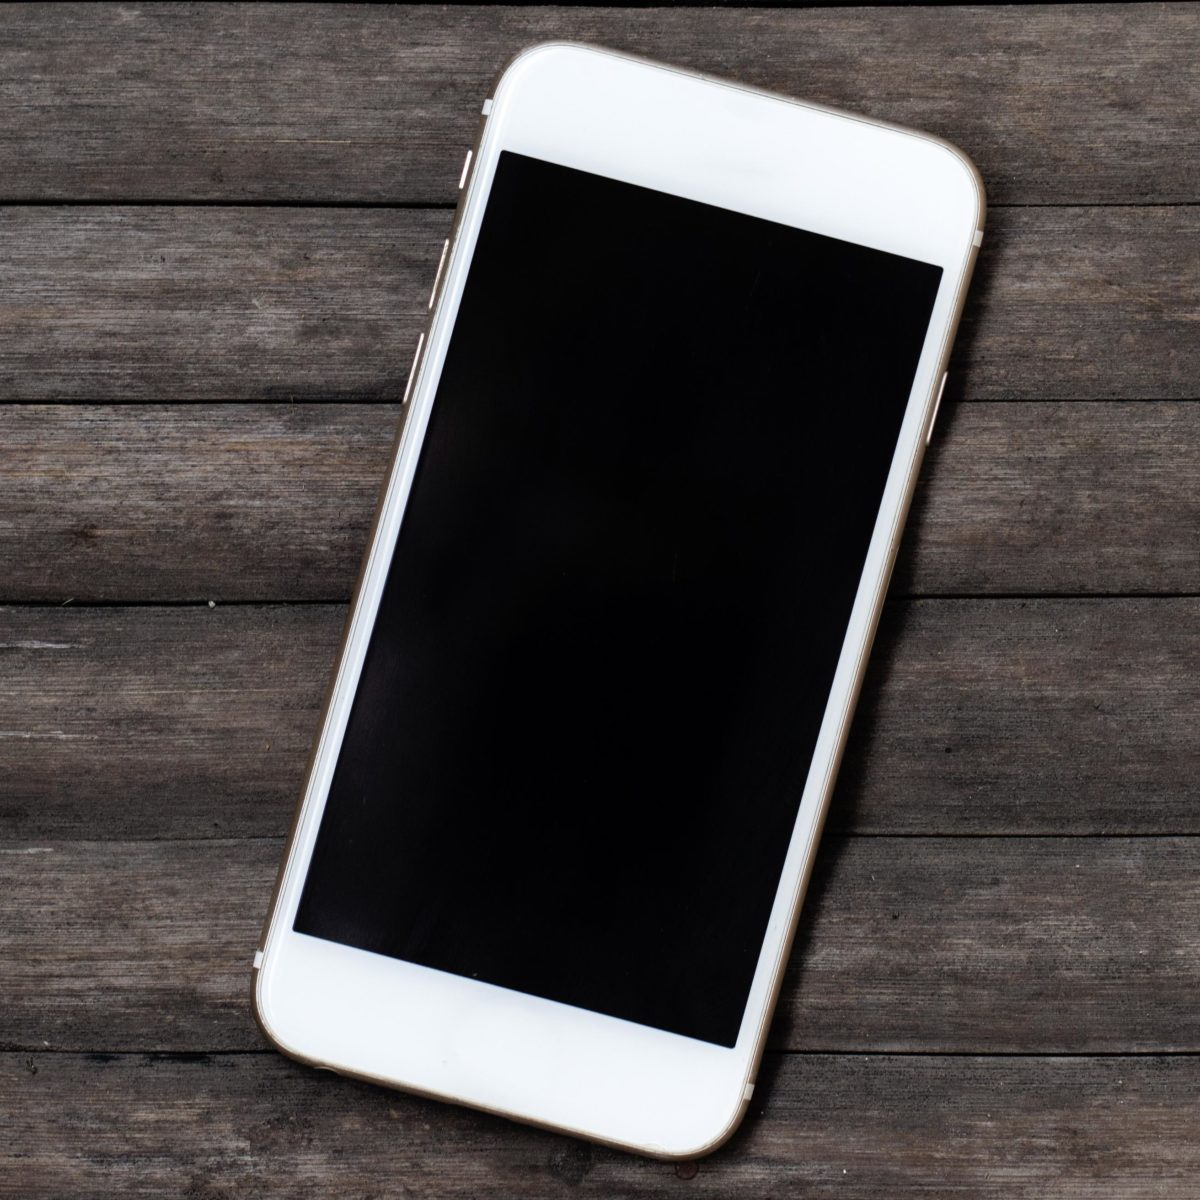 8 Easy Ways to Free Up Space on Your iPhone